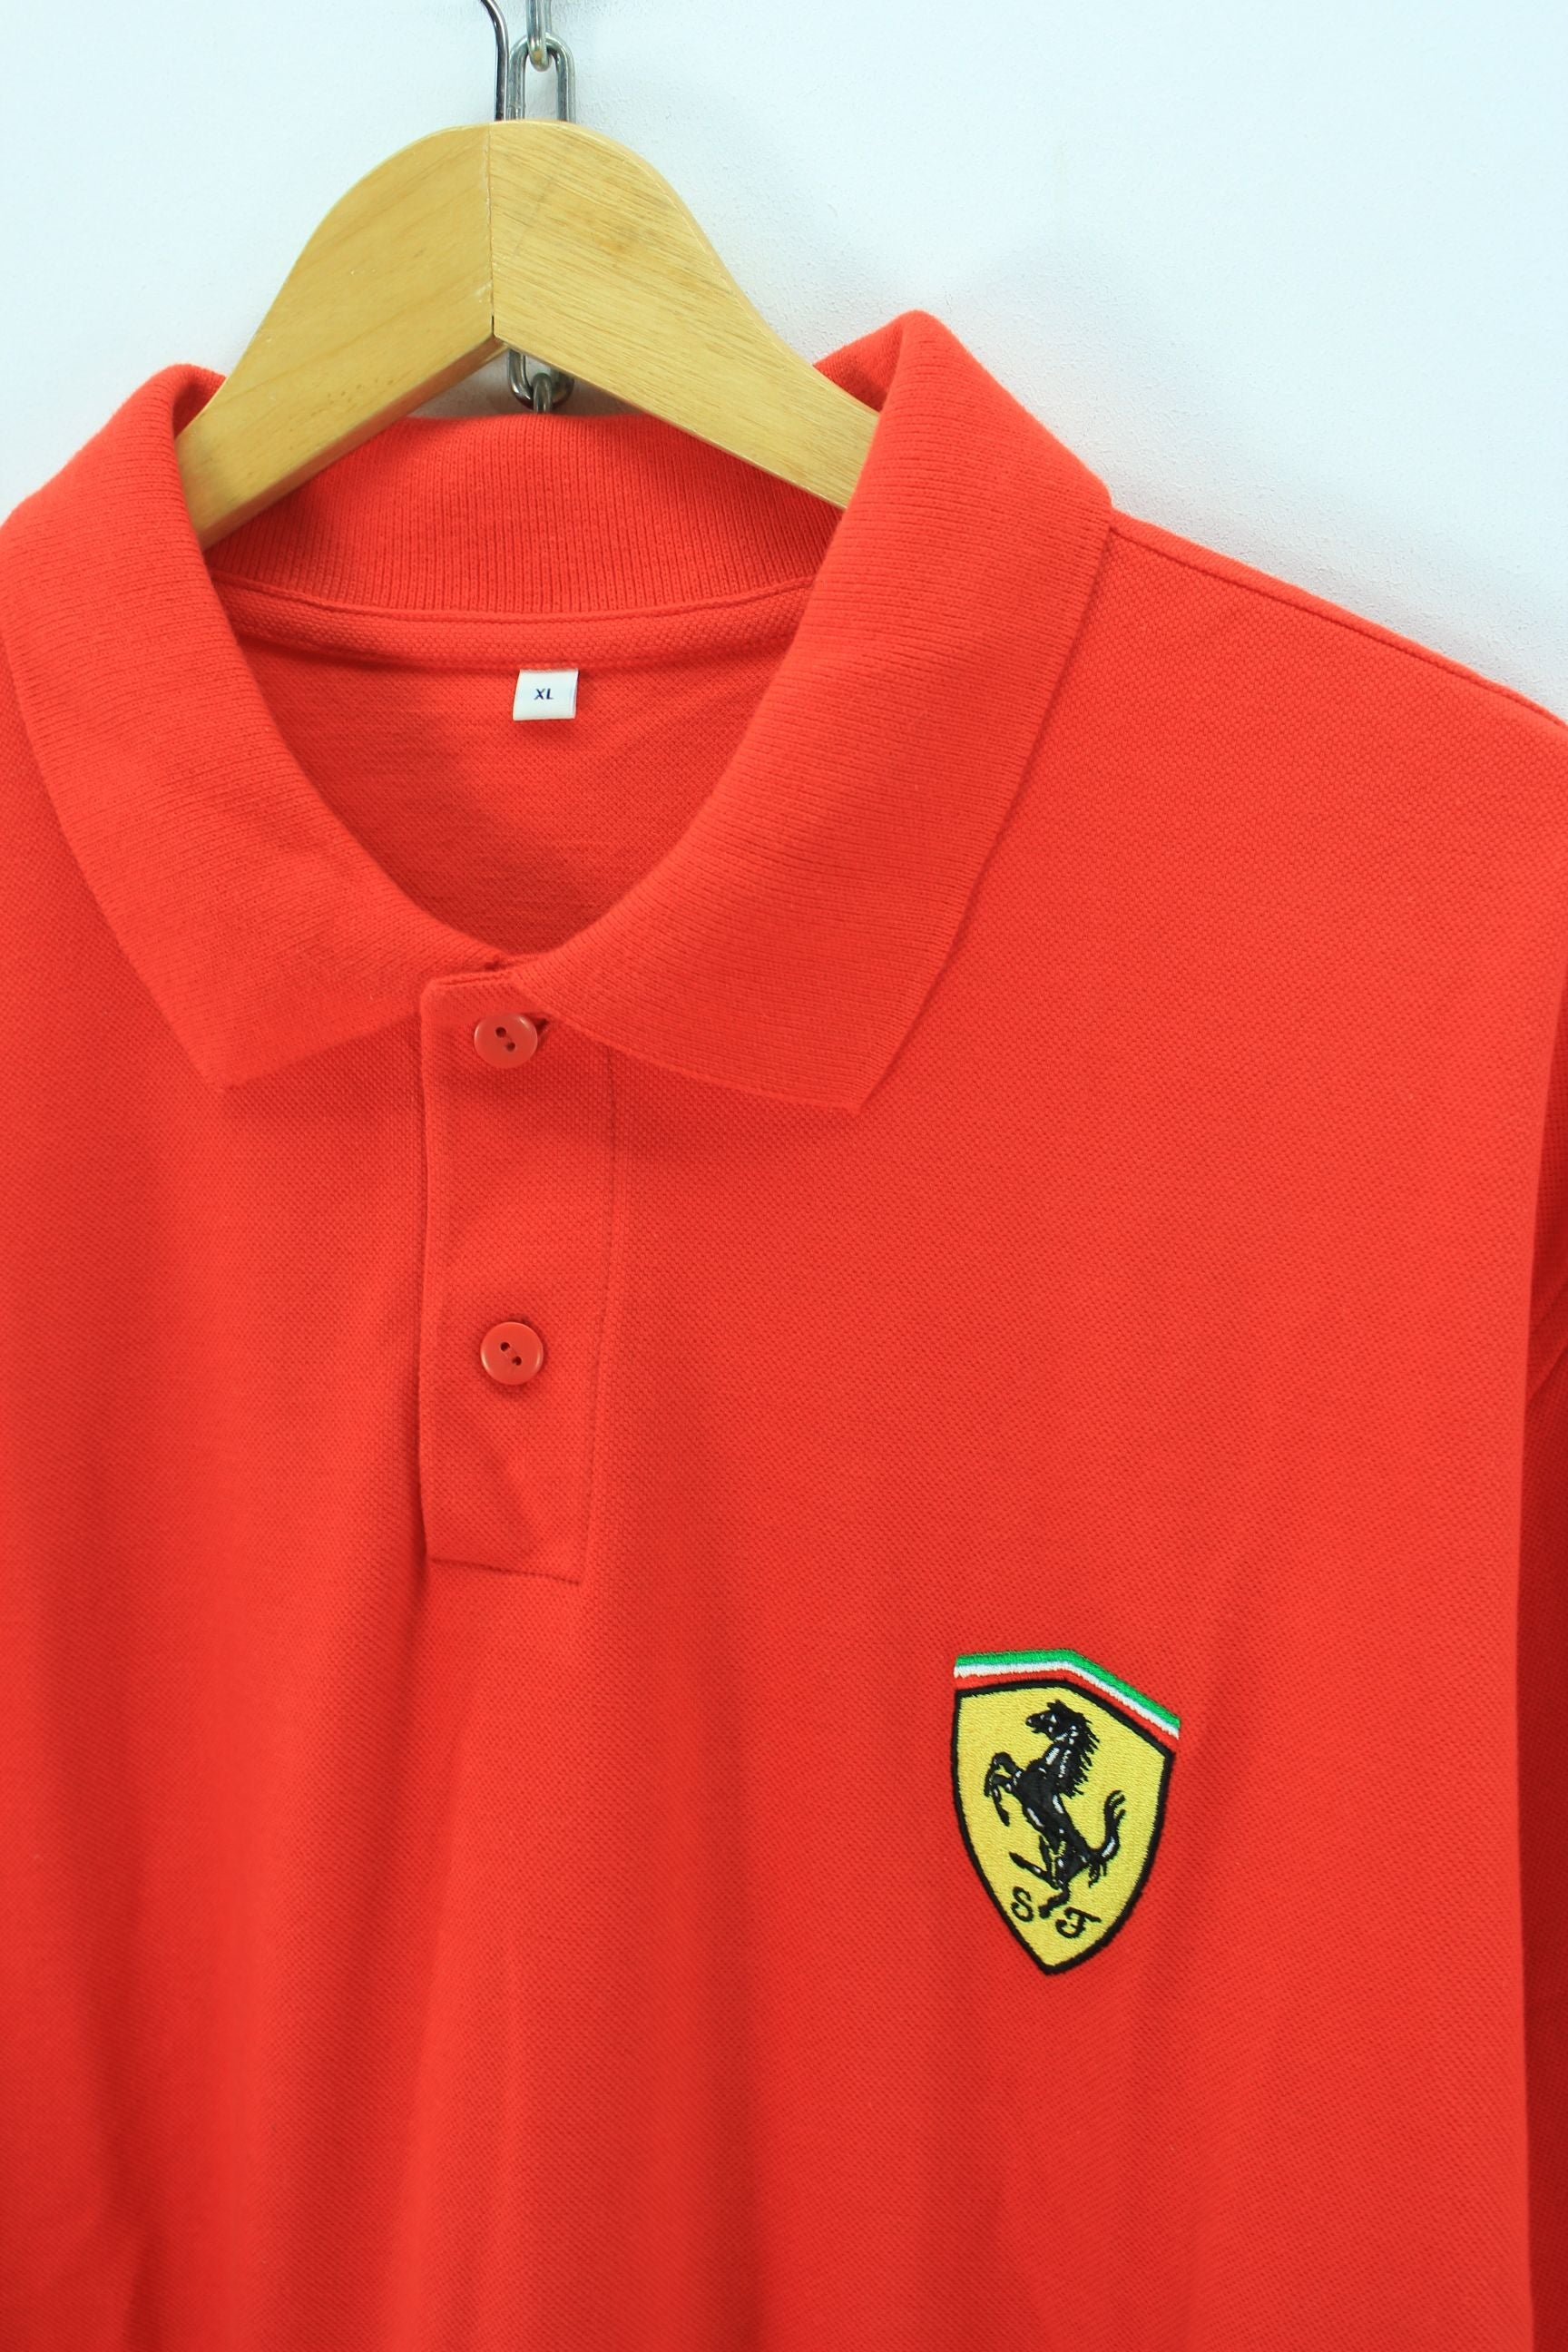 zul italy pl men team shirt polo countings ferrari tricolore scuderia red